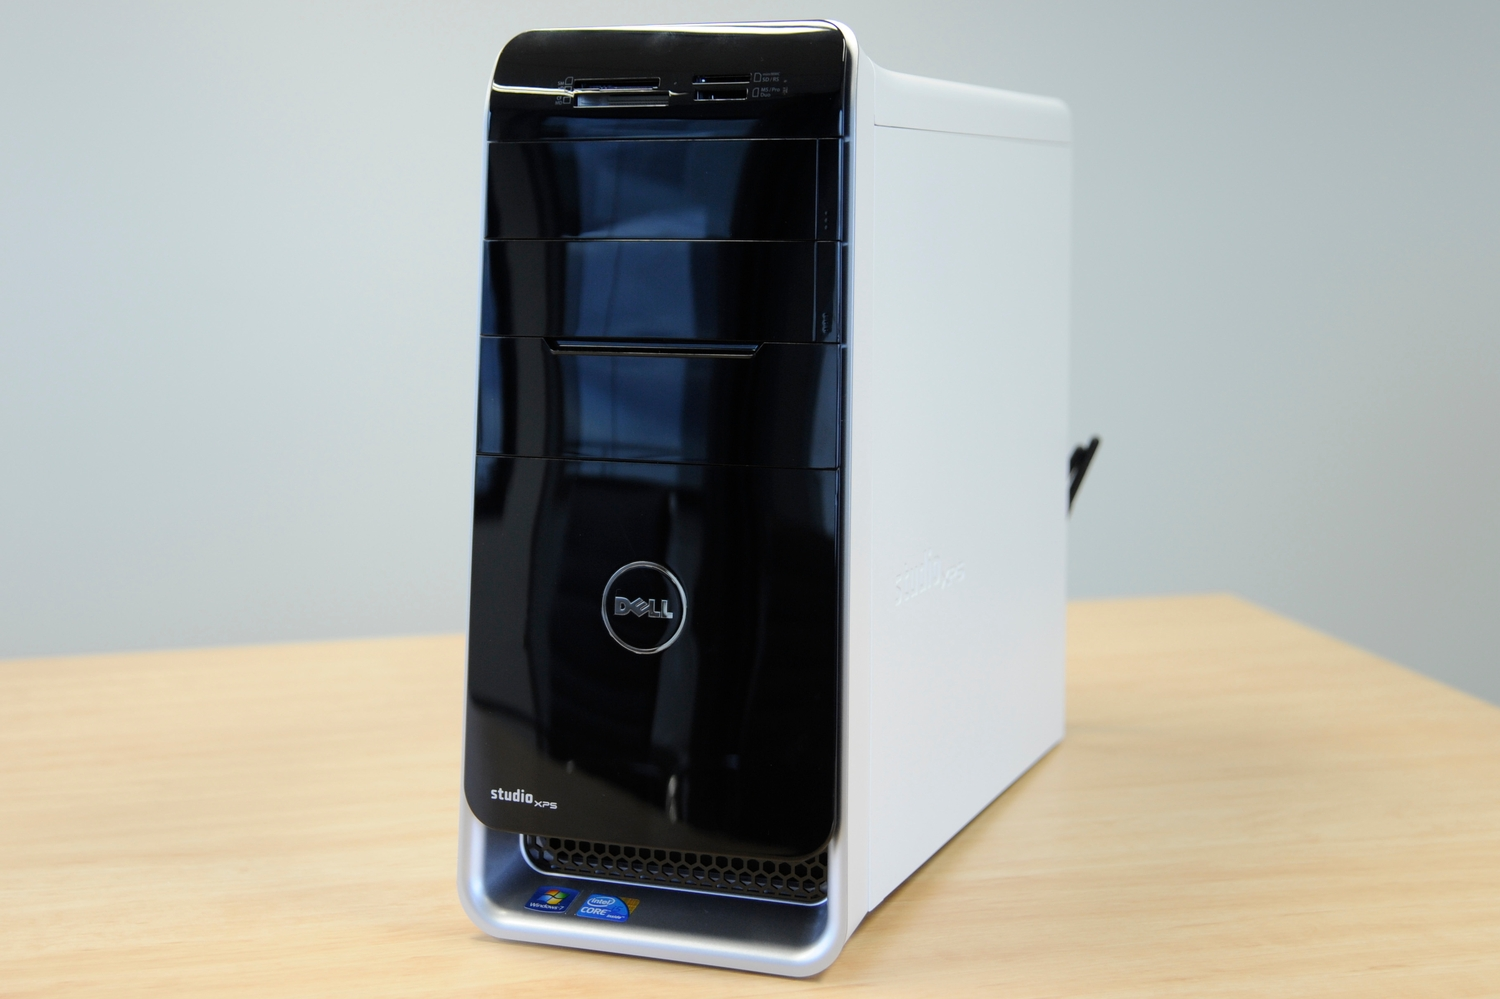 Dell Studio XPS 8100 Review: This Dell PC has the grunt to handle everyday  computing with ease - Brand Centre - Dell - PC World Australia